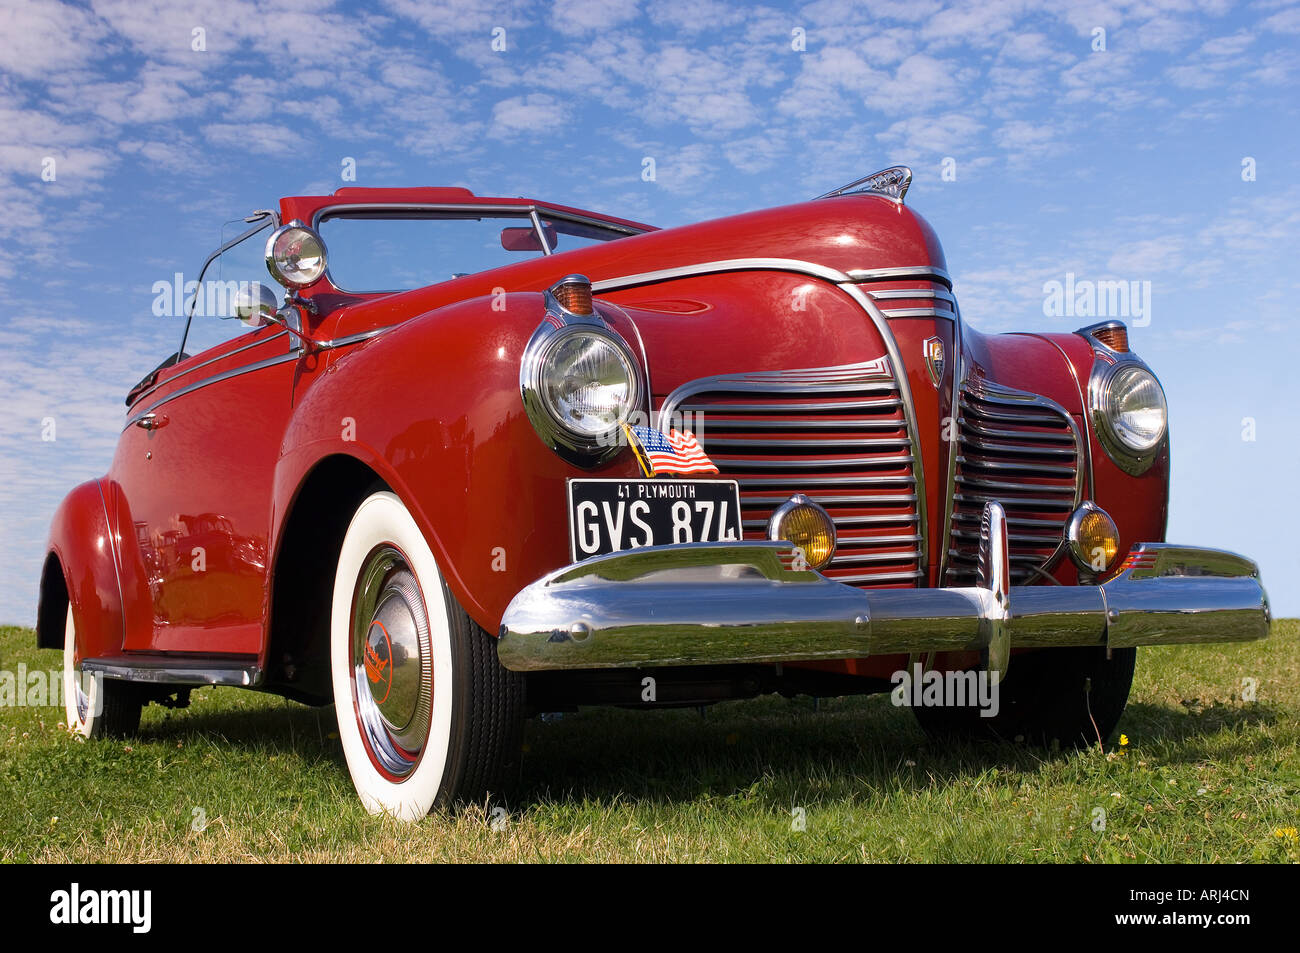 A Classic 1941 Chrysler Plymouth Special Deluxe P11 Power